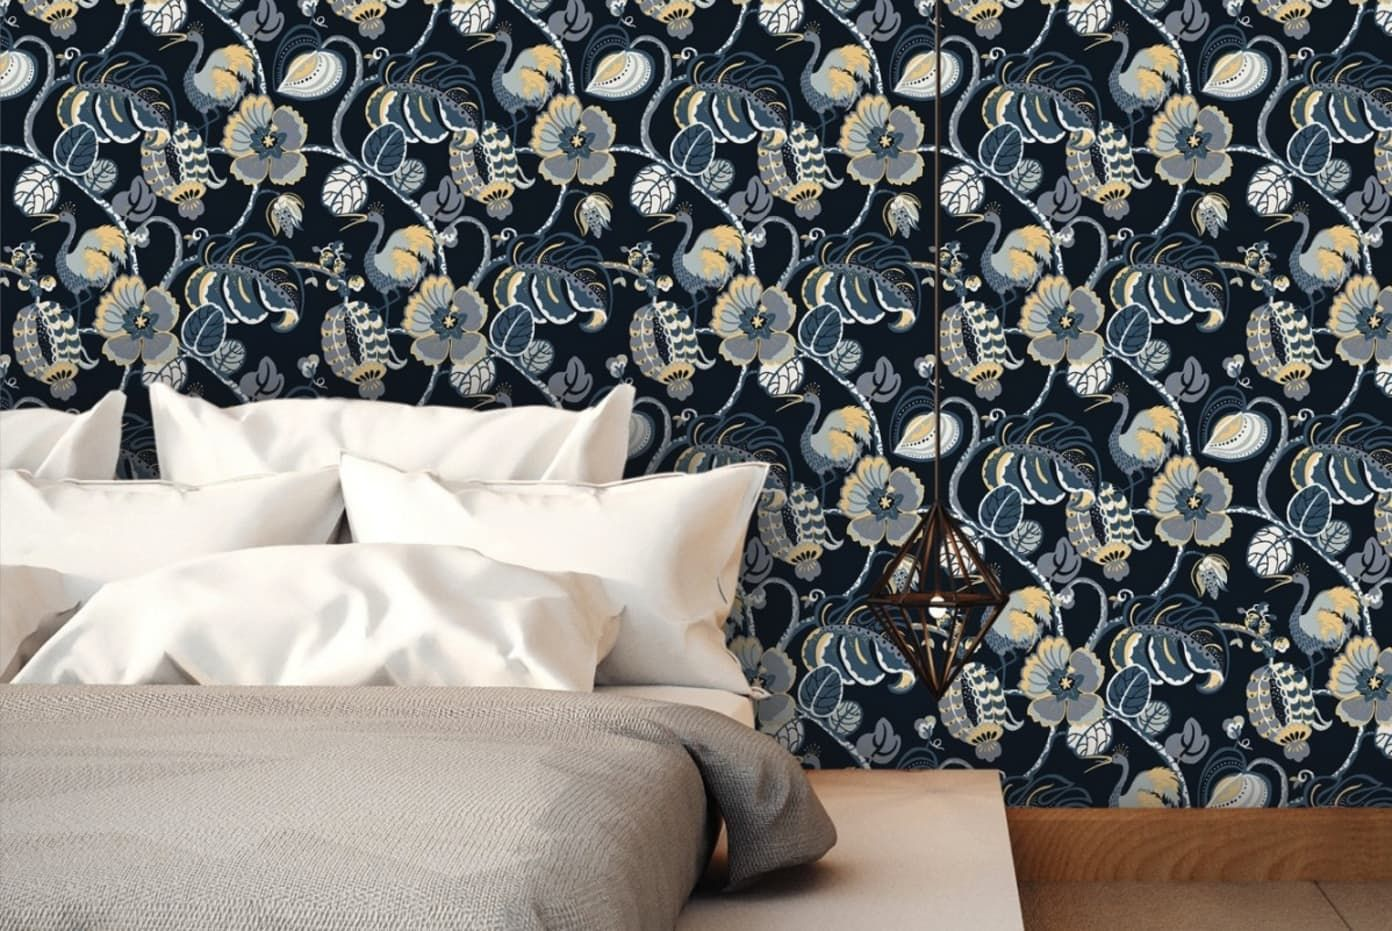 15 Removable Wallpaper Companies To Know In 2020 Removable Wallpaper Bedroom Removable Wallpaper Best Removable Wallpaper